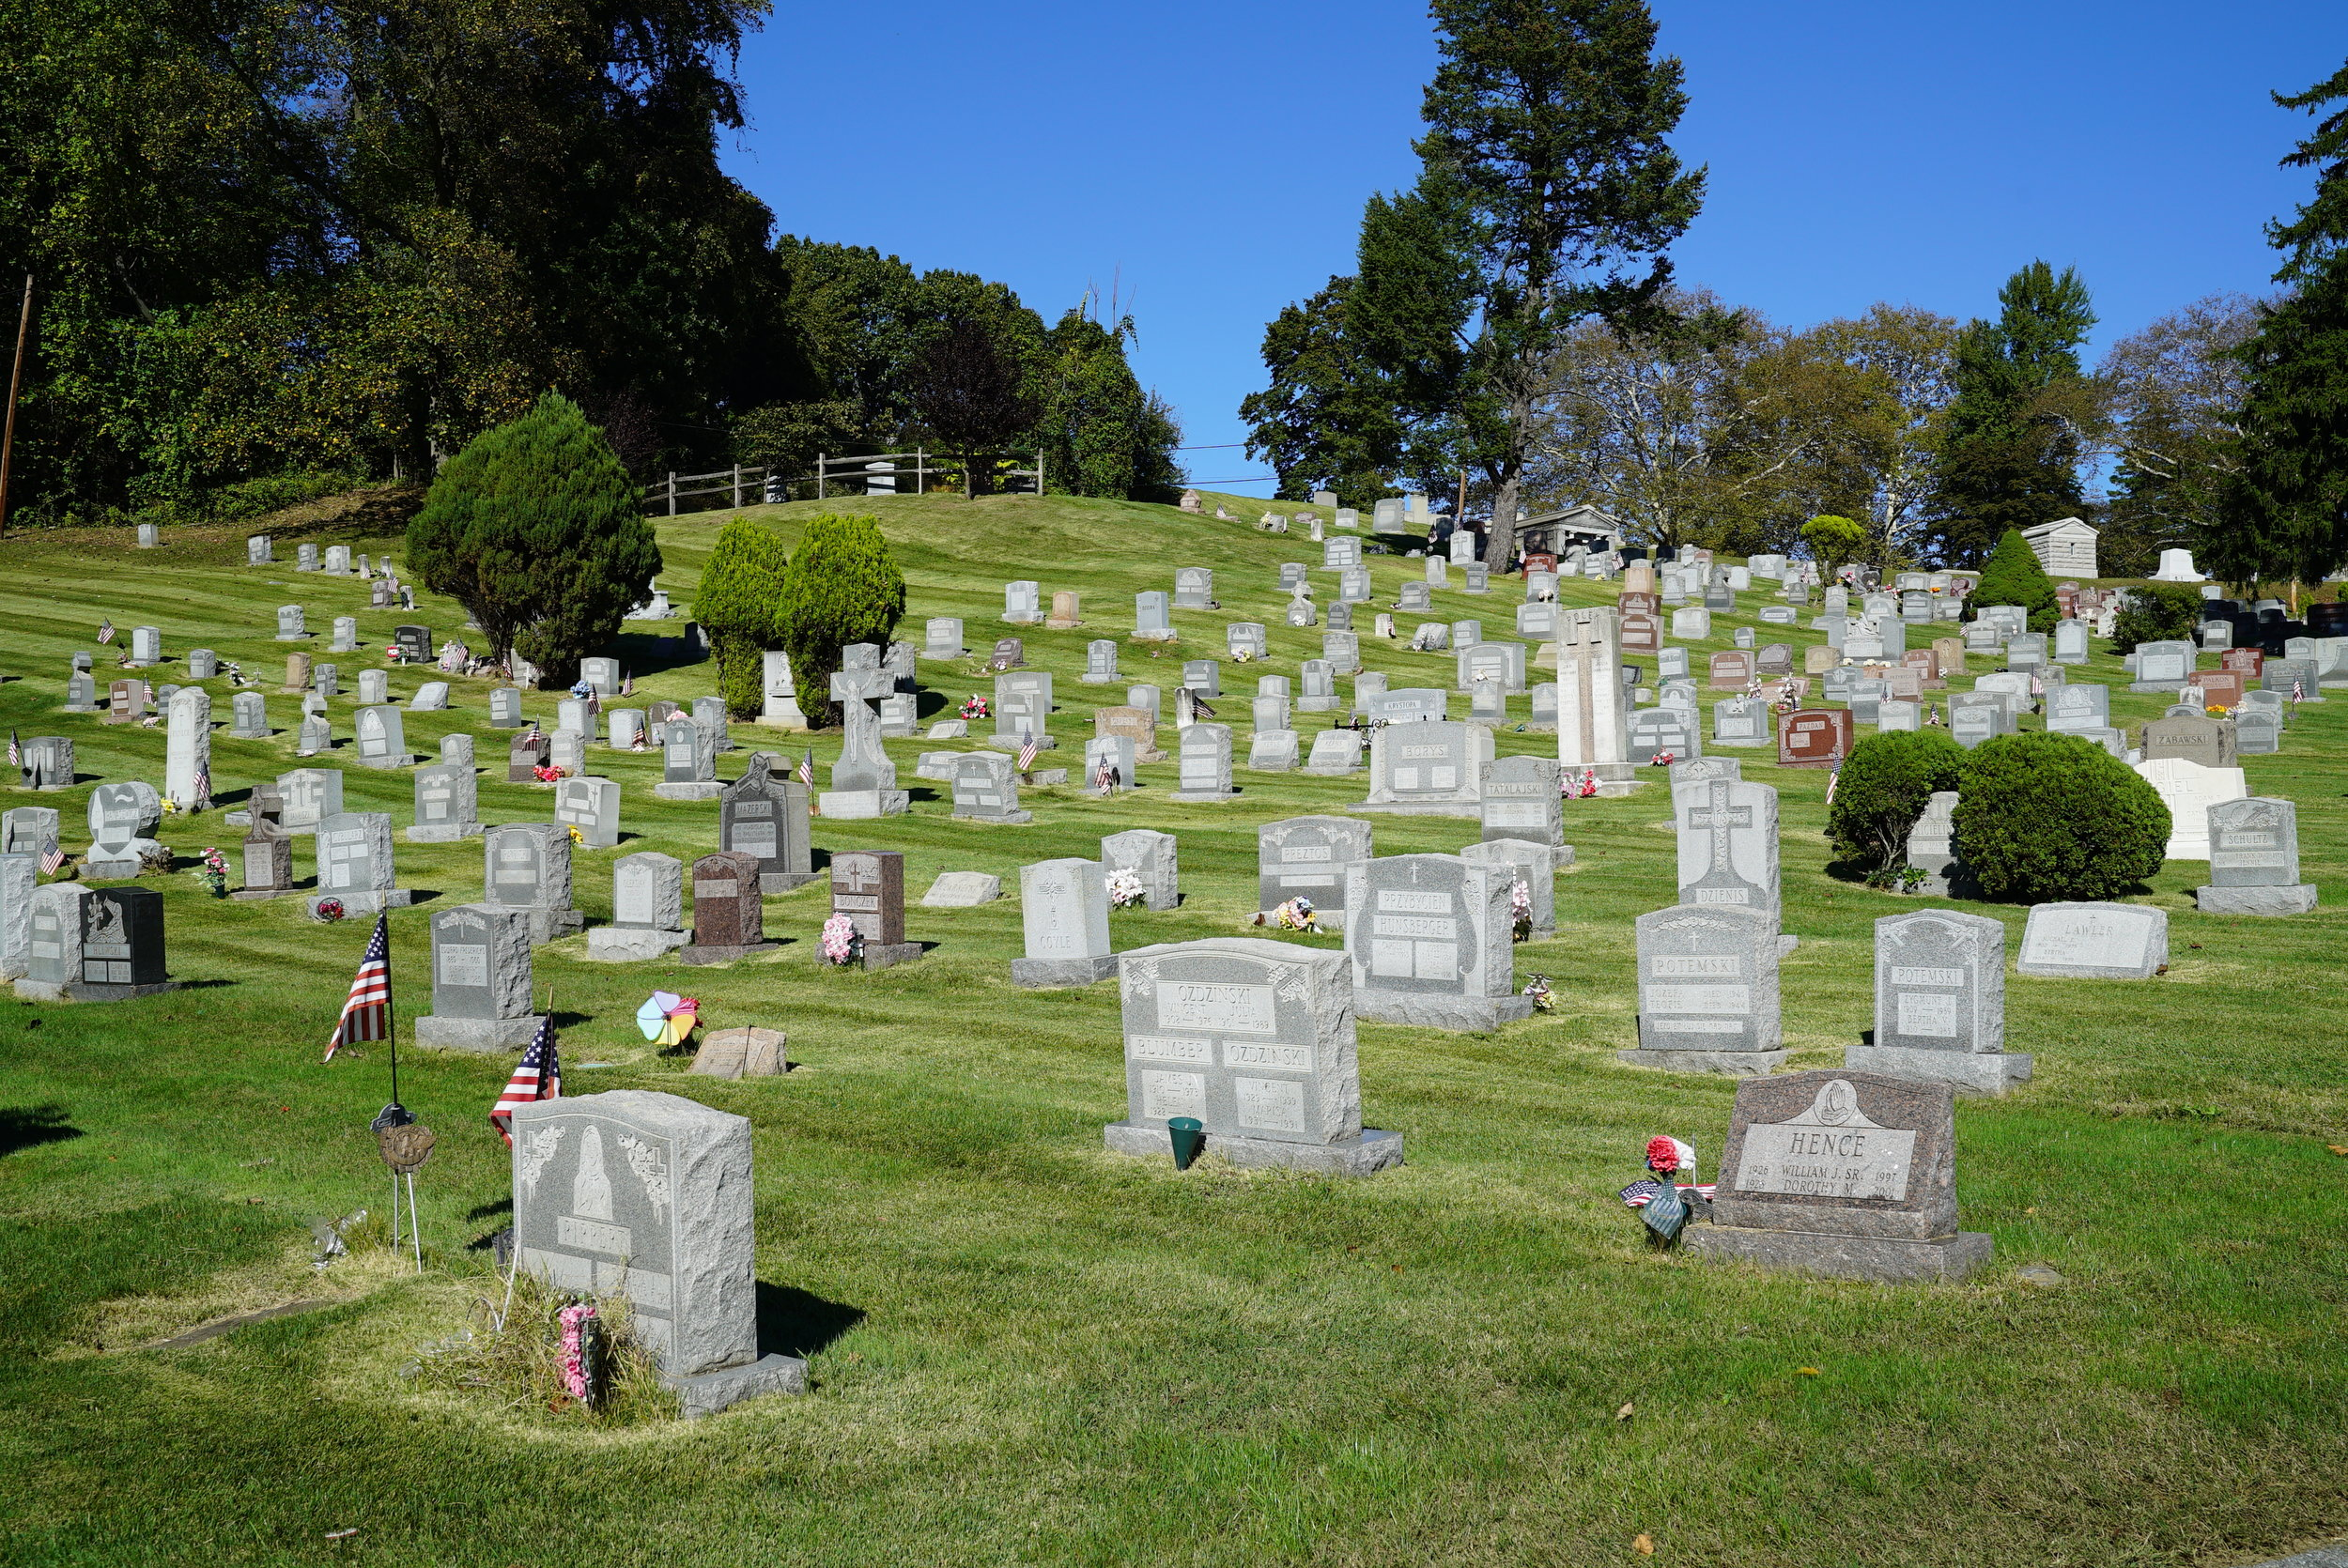 Part of the rolling landscape at Westminster Cemetery. Bala Cynwyd, Pennsylvania.